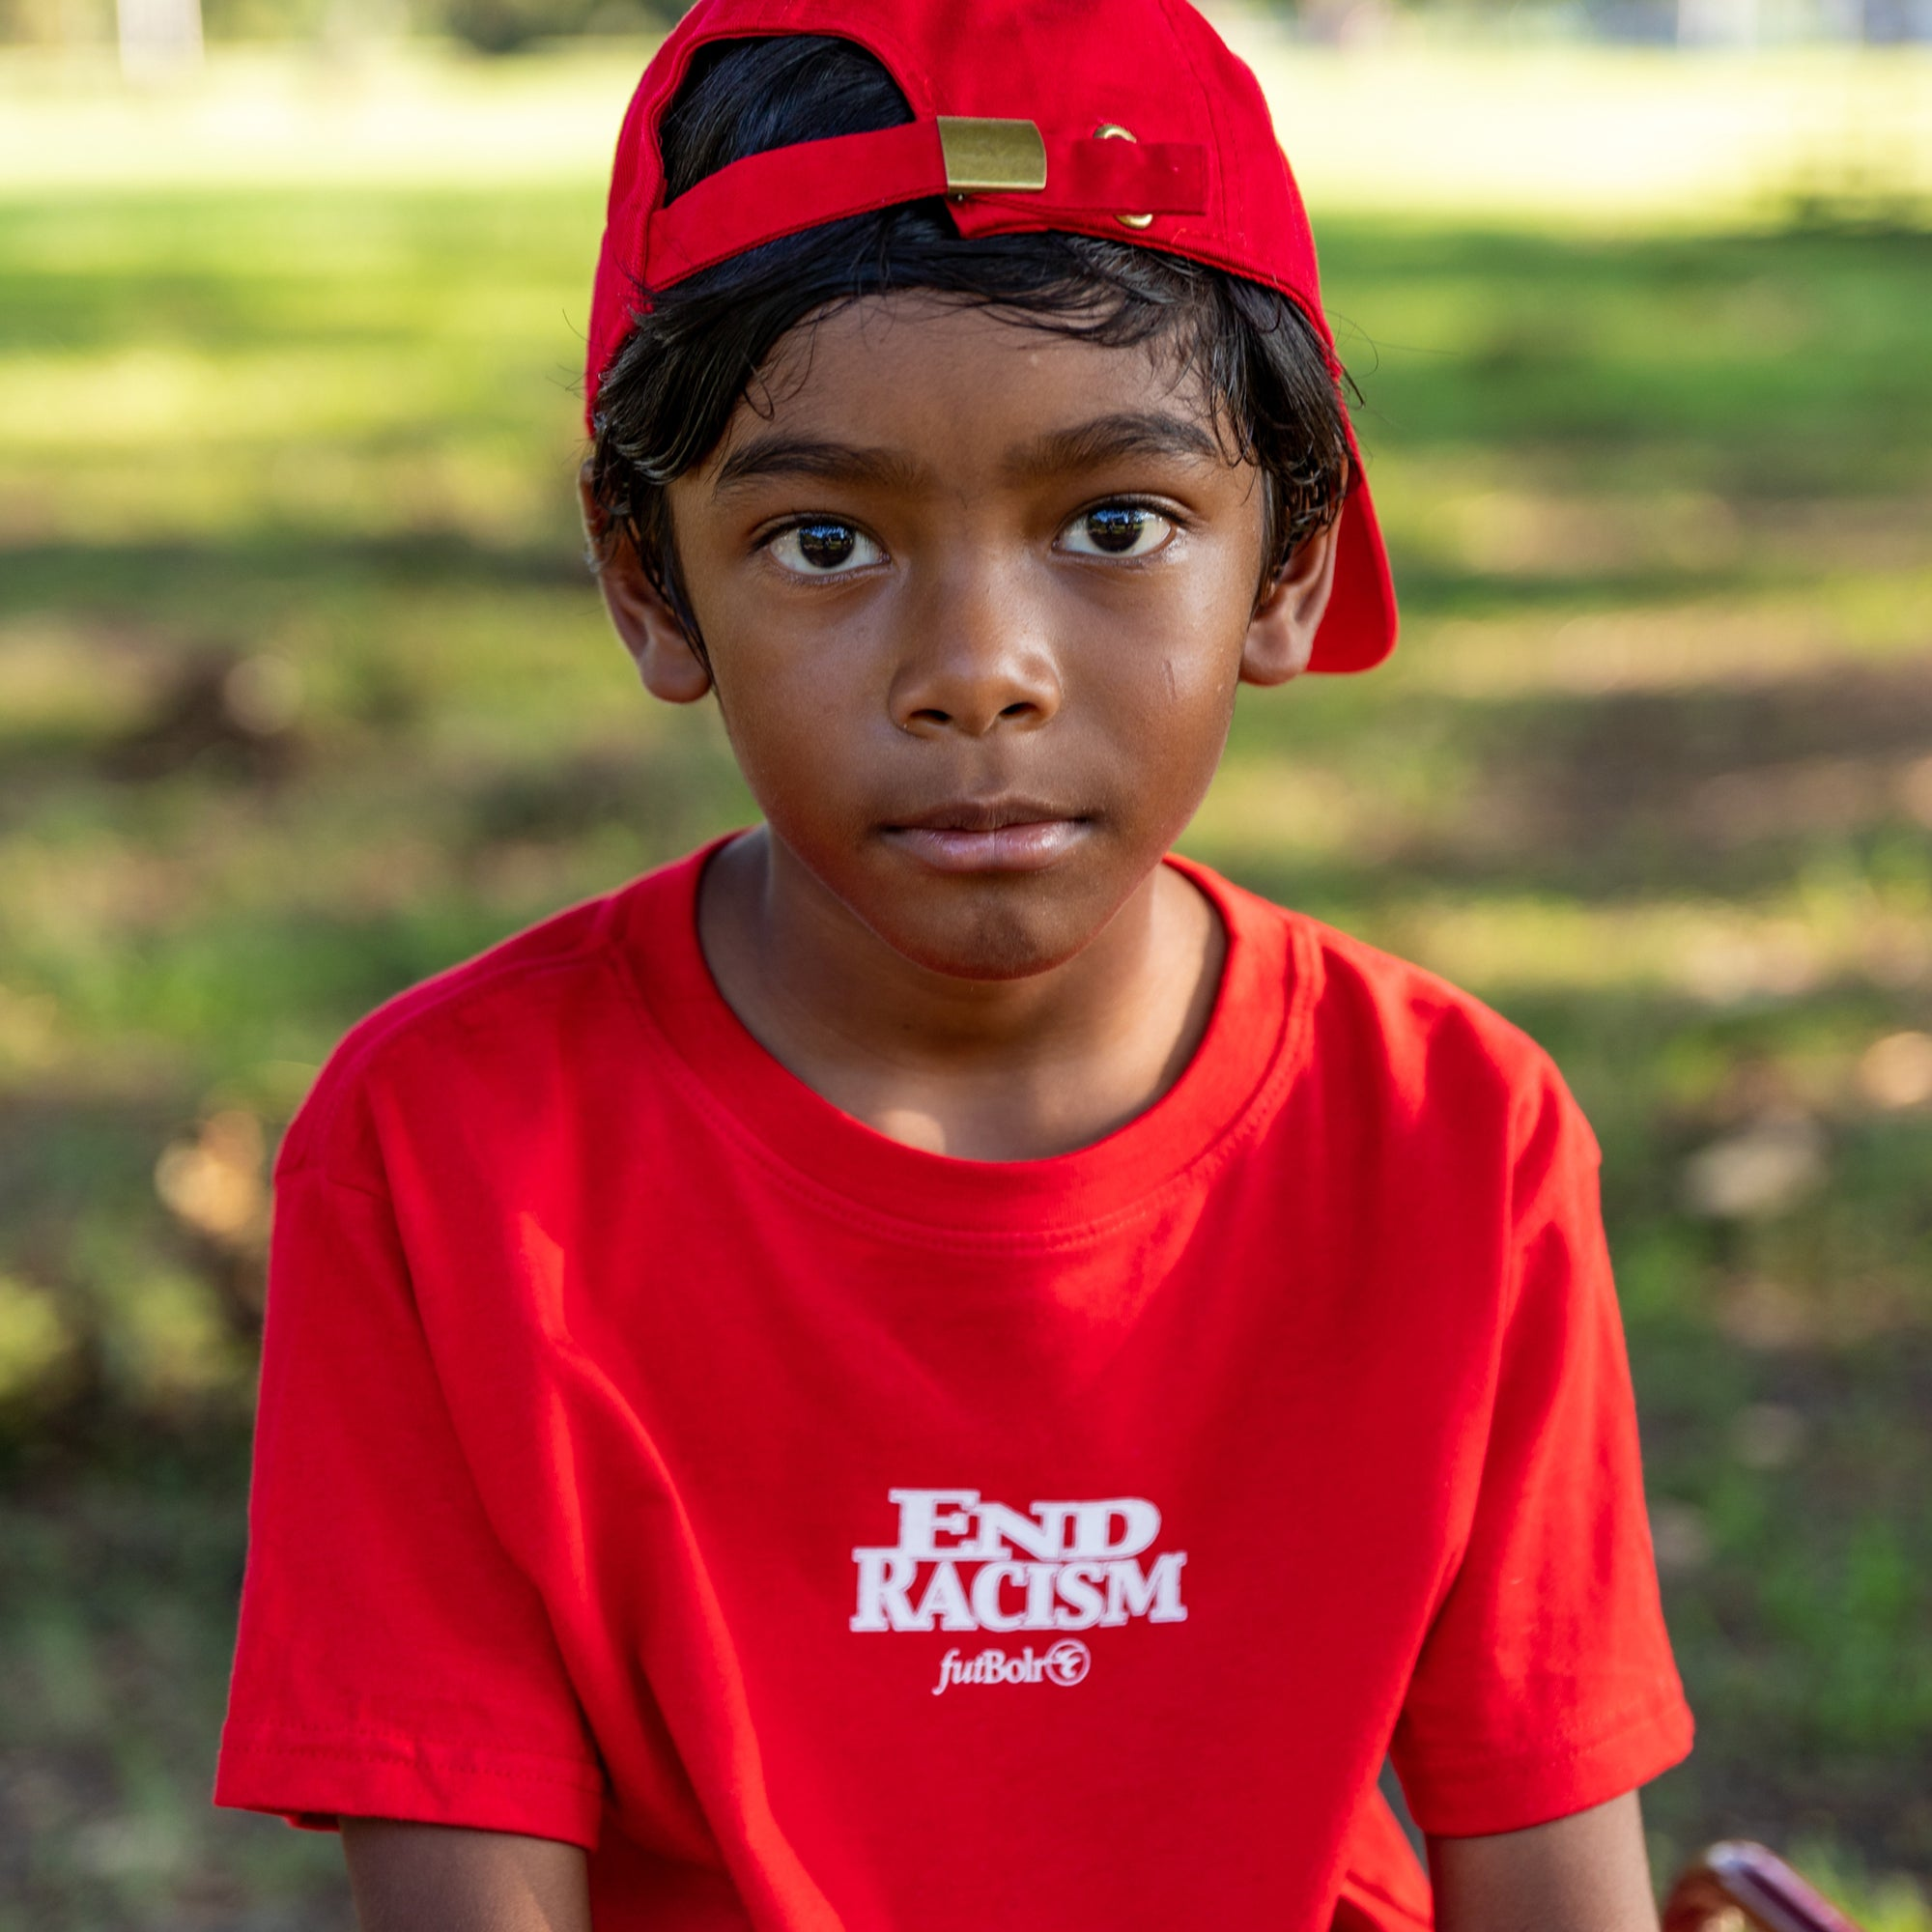 End Racism Futbolr Toddler Tee